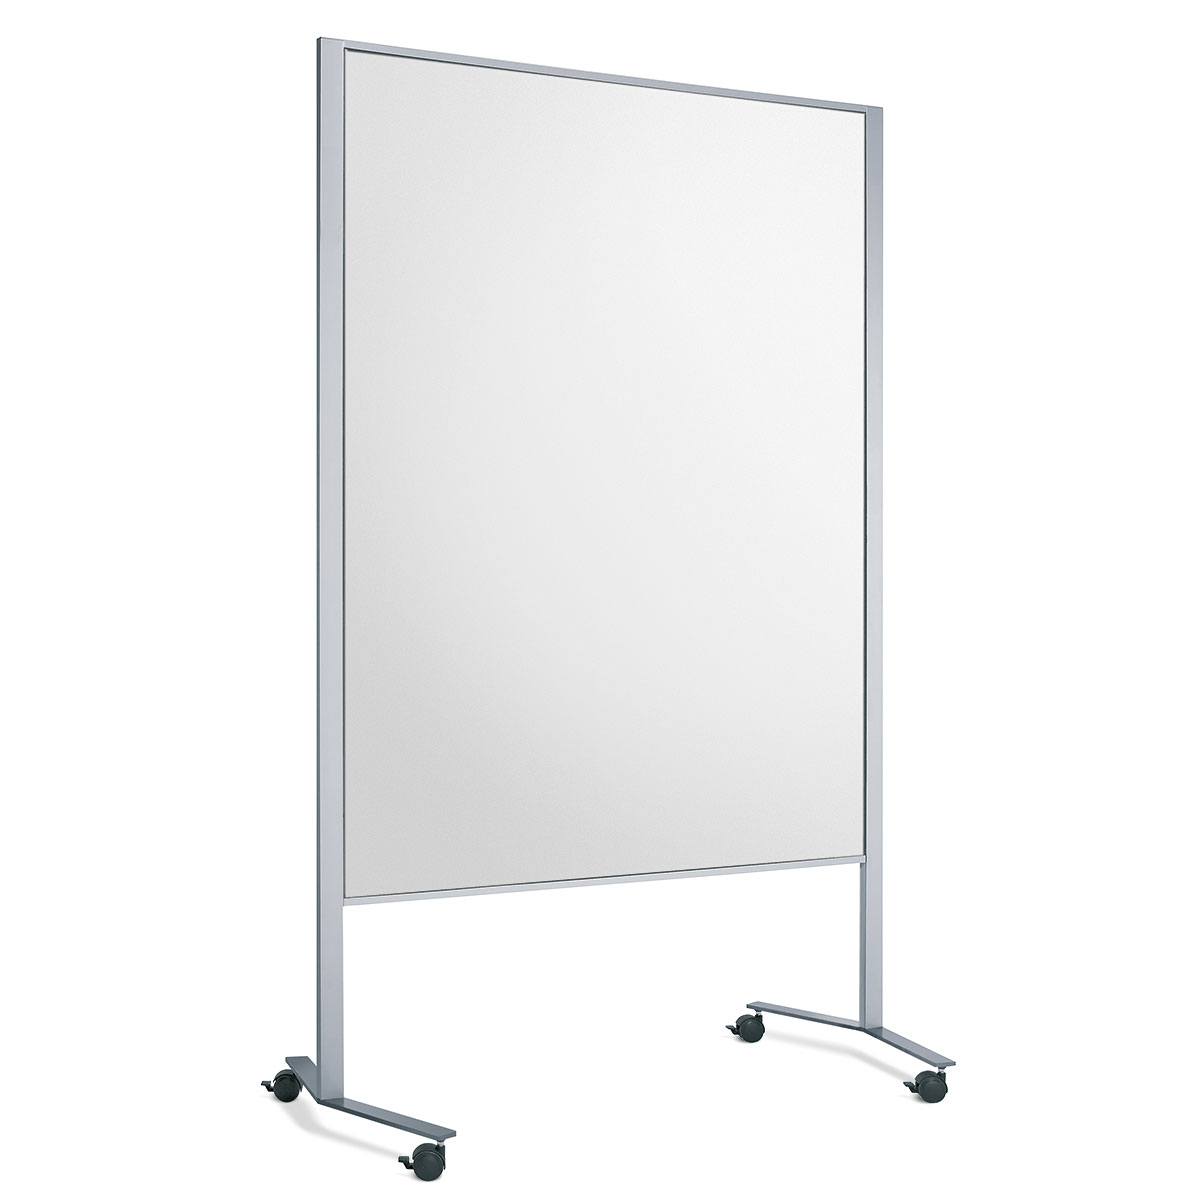 Whiteboard Lw 11 Slide Fahrbar Whiteboards Whiteboards